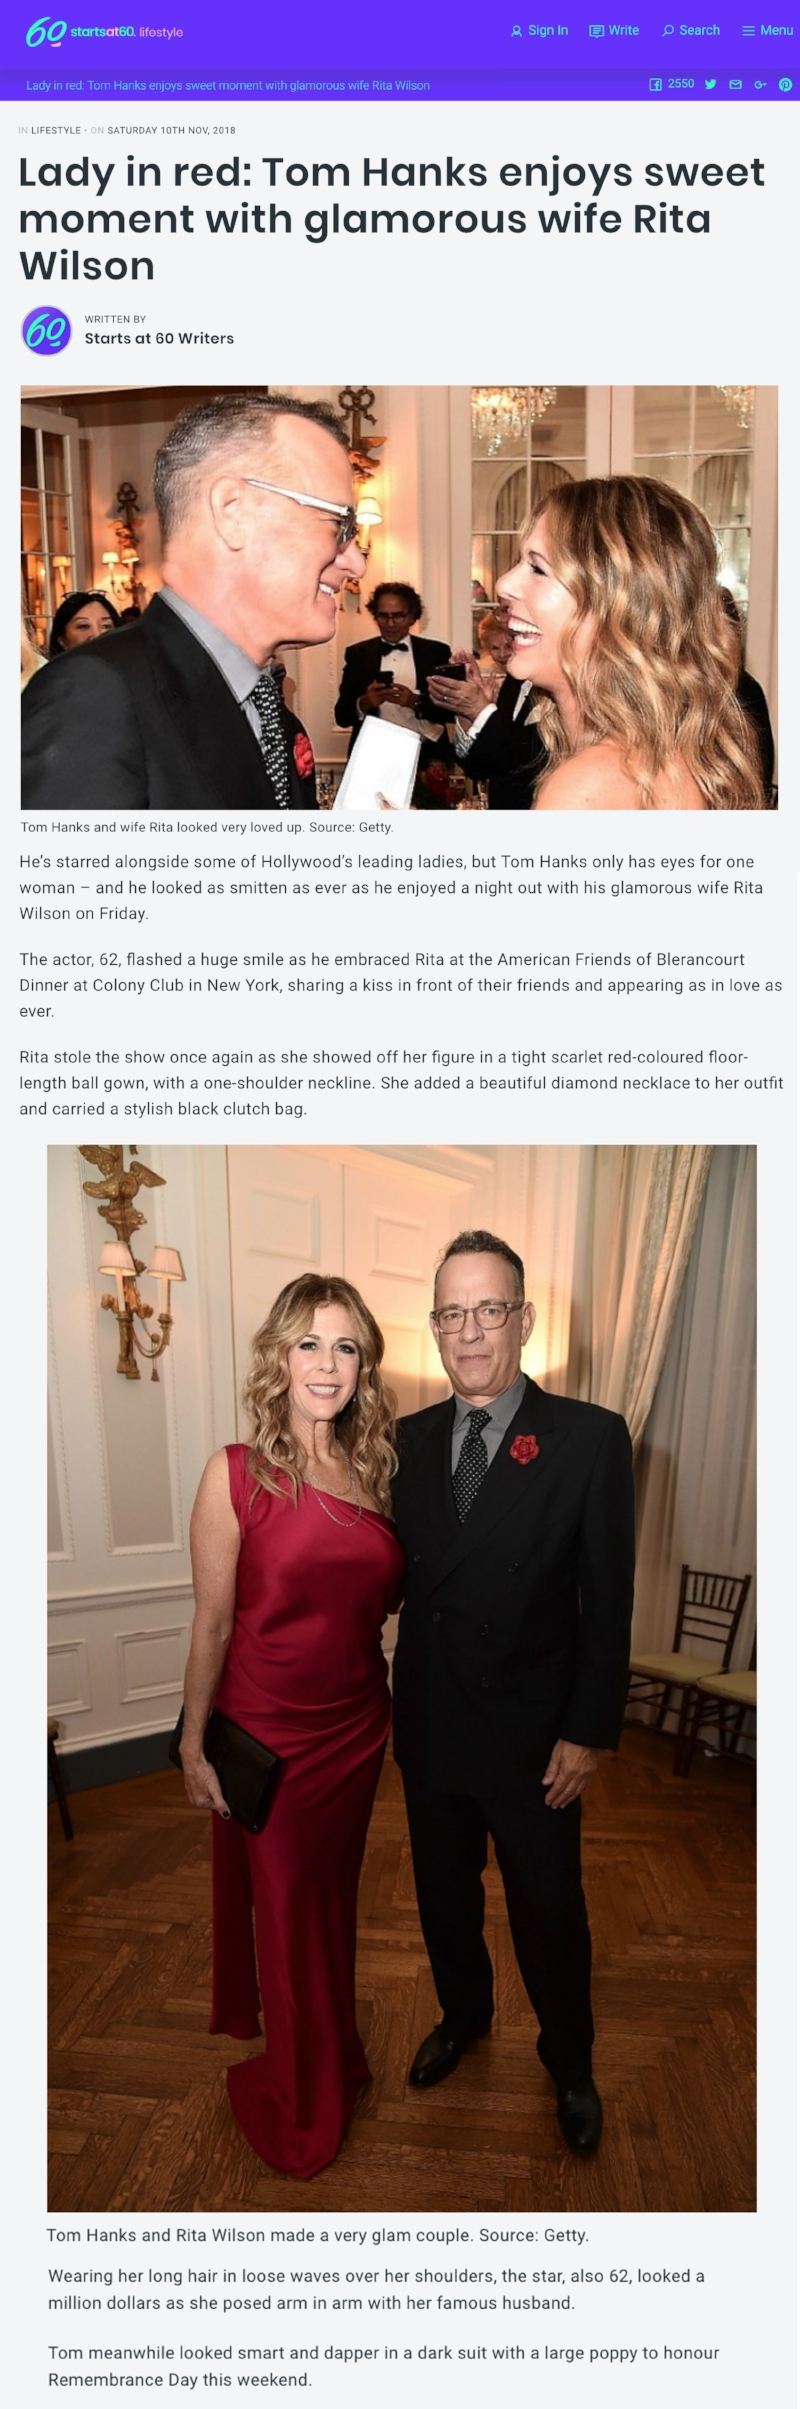 Lady In Red - Tom Hanks, wearing Fleur'd Pins, Enjoys Sweet Moment with Glamorous Wife Rita.jpg